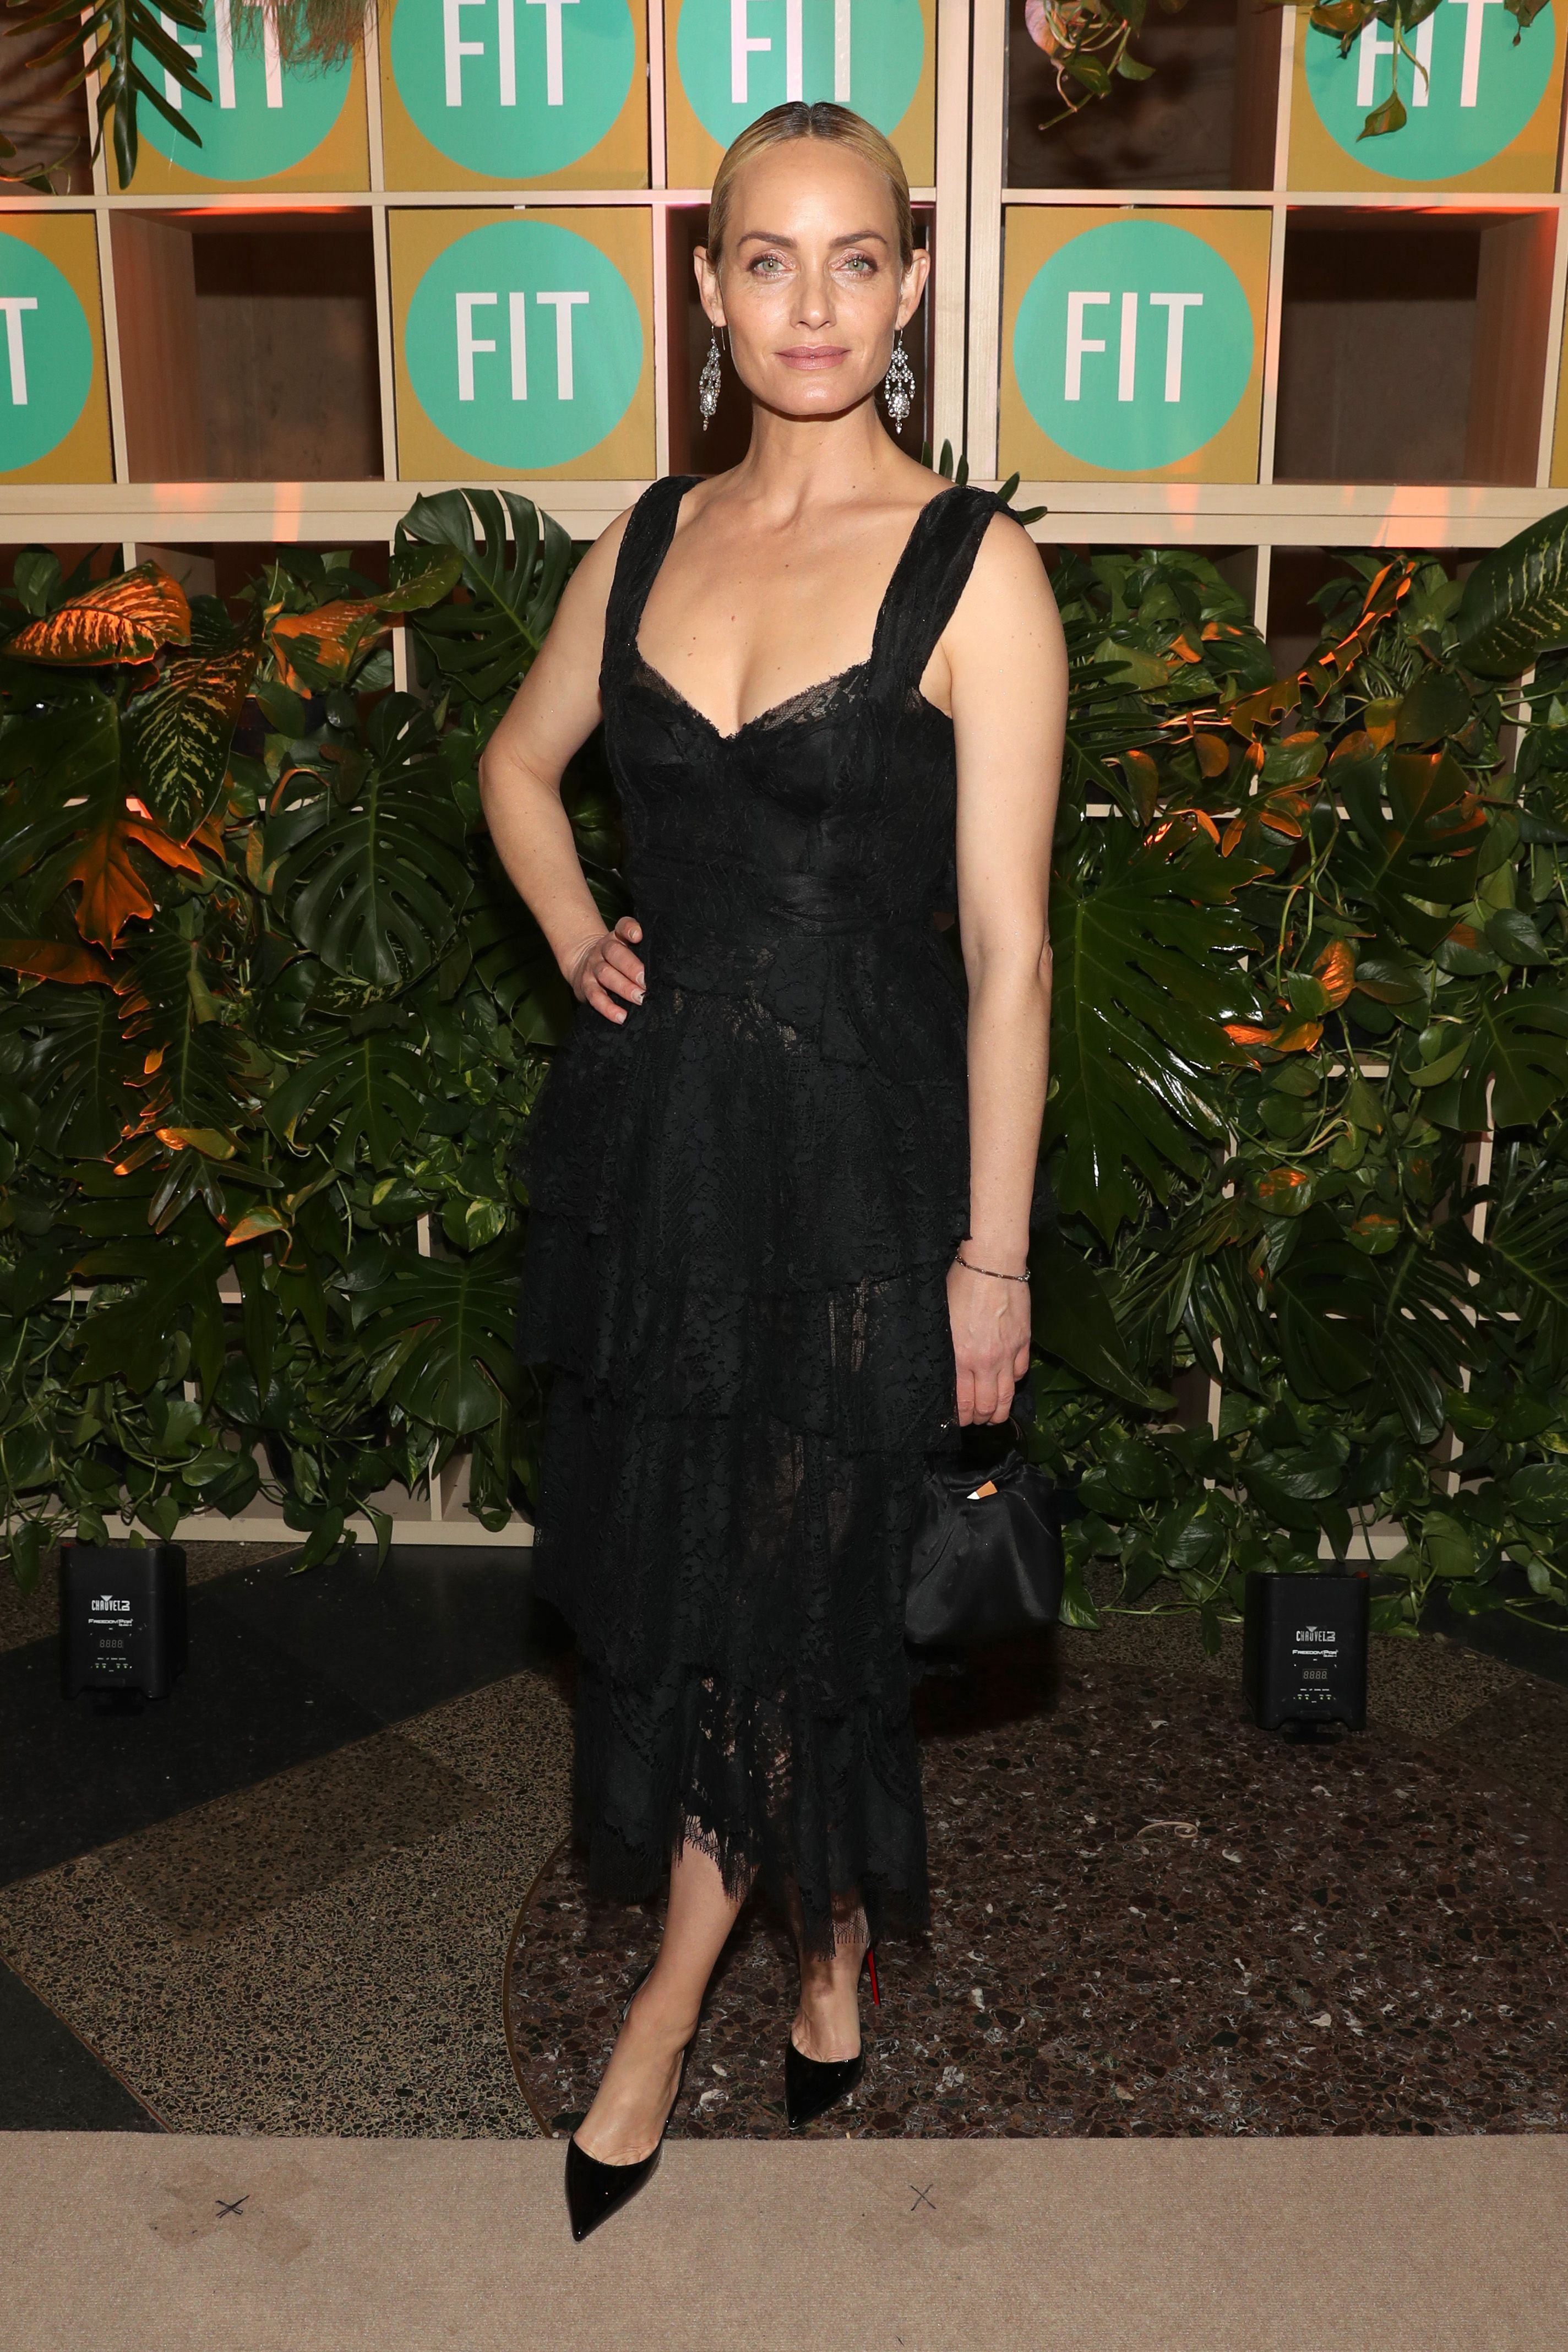 Amber Valletta Amber Valletta attends the Fashion Institute of Technology (FIT) and FIT Foundation's 2019 Annual Awards Gala at the American Museum of Natural History on April 3 in New York.